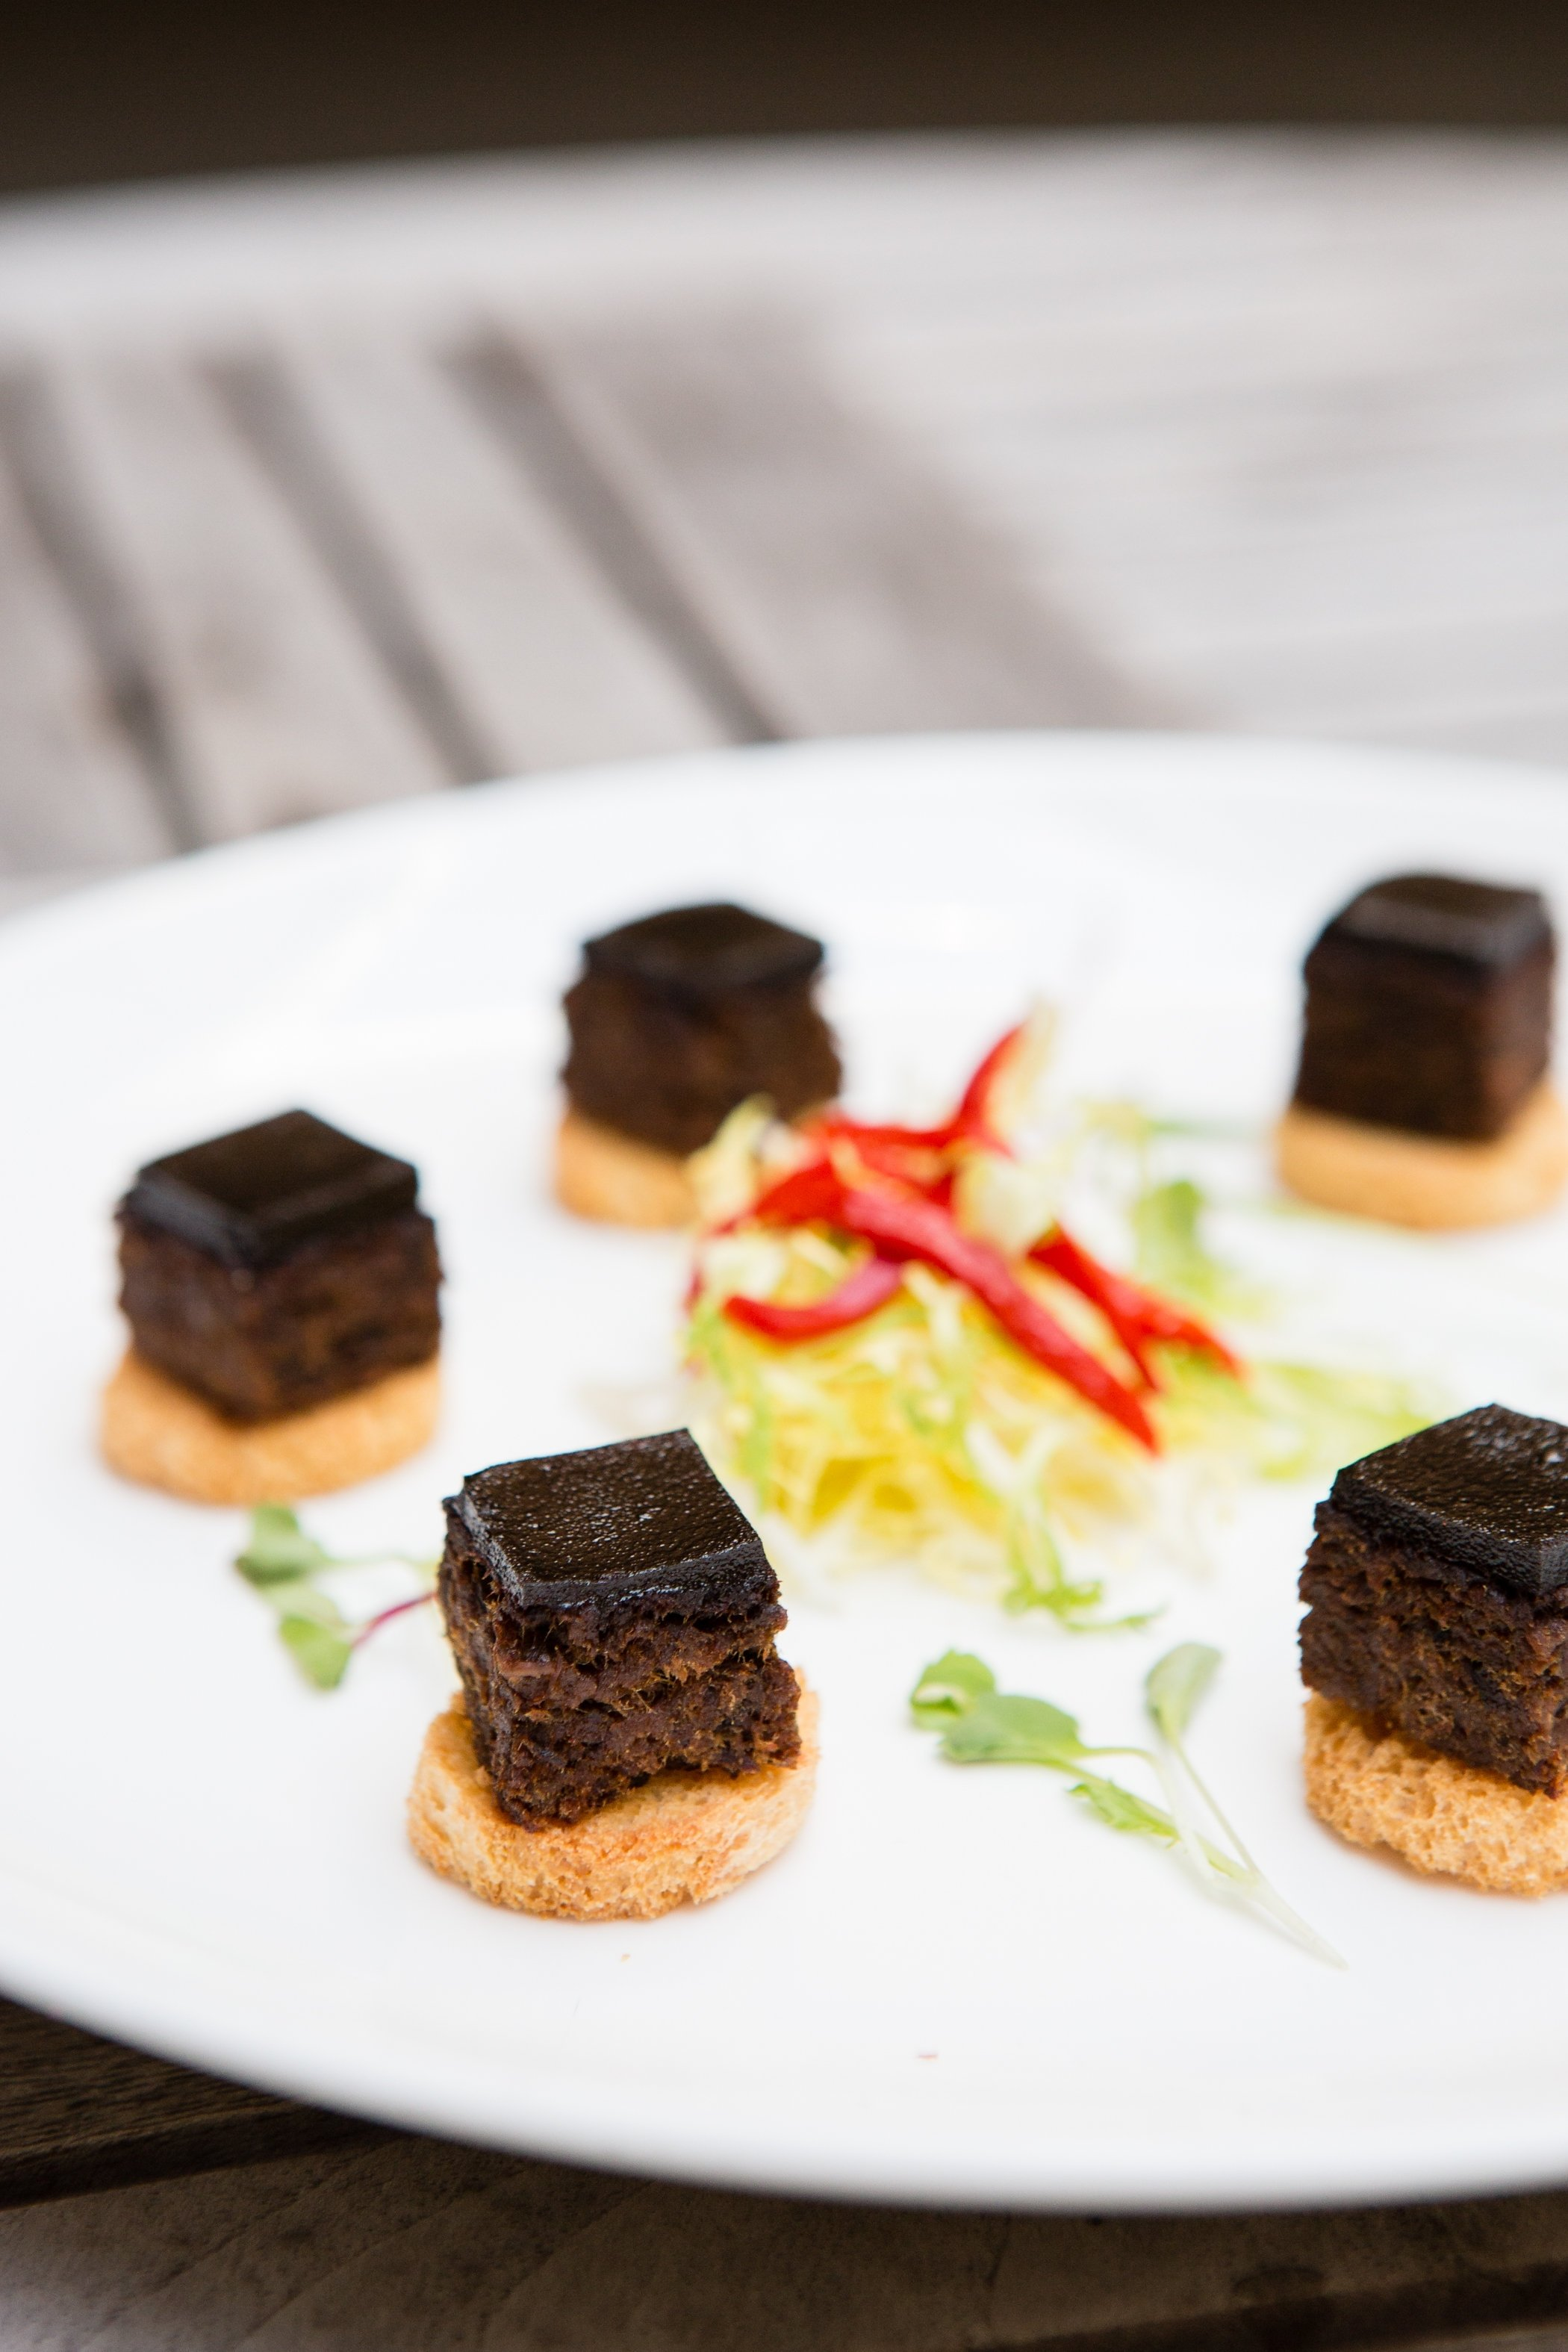 10 Nice Passed Hors D Oeuvres Ideas rh passed hors doeuvres grilled short rib with sweet soy photo 2021